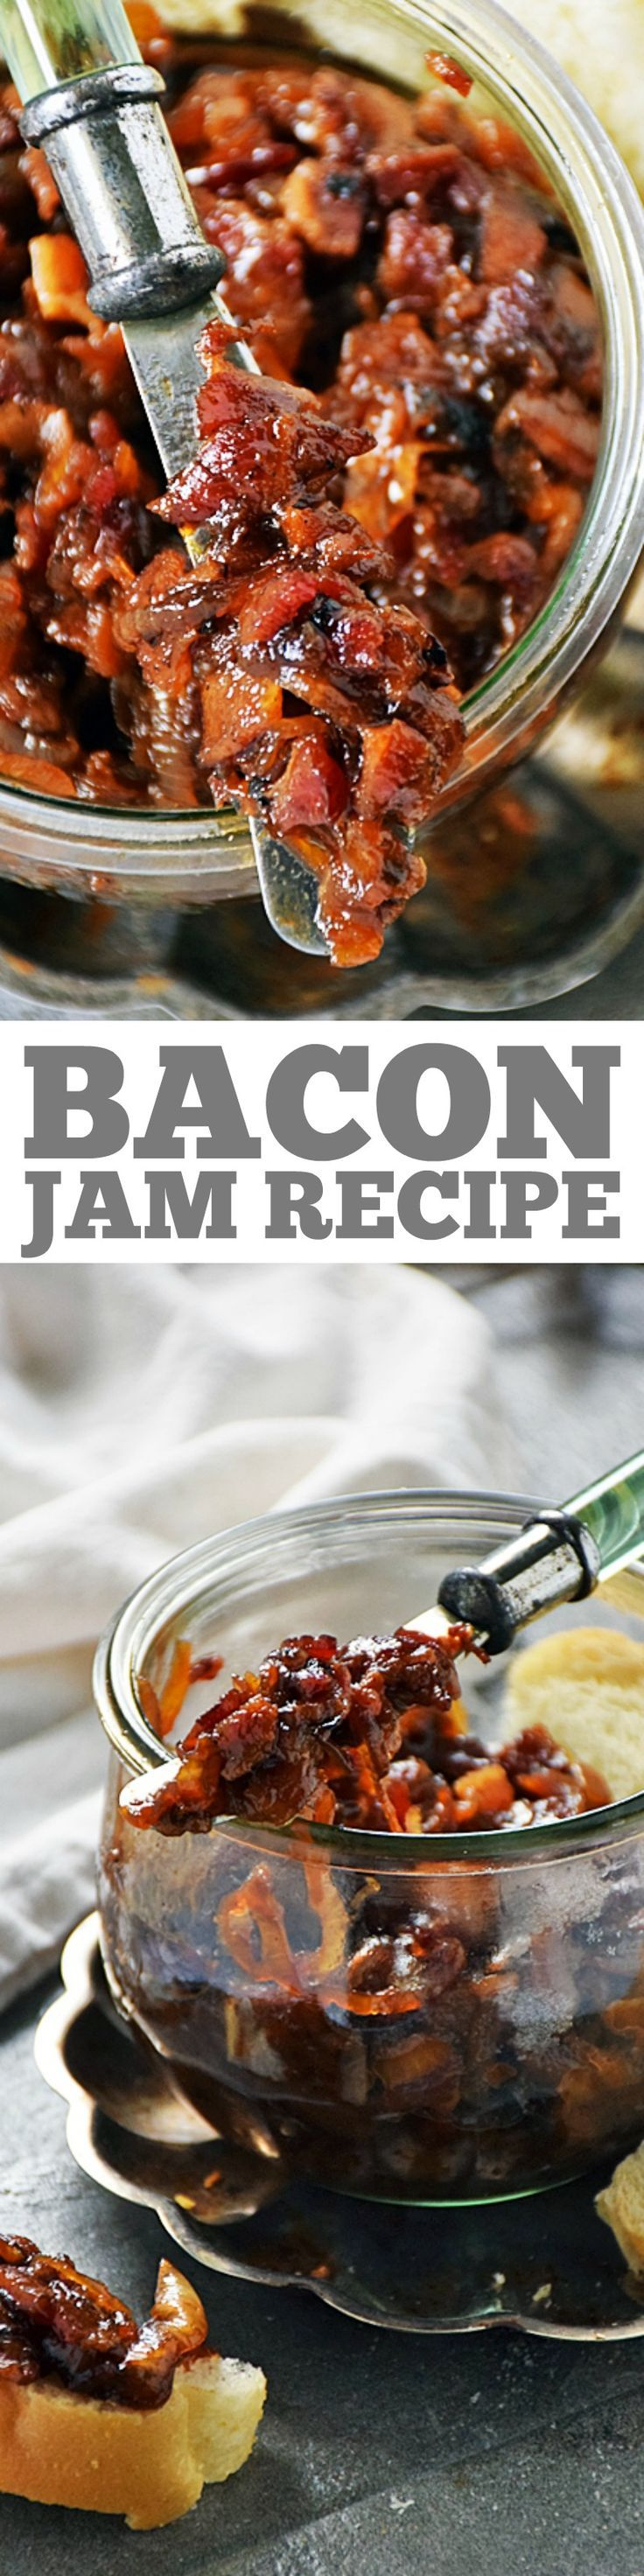 Bacon Jam is an easy recipe to make and great to have on hand. It is an amazing flavor enhancer for toast, sandwiches, burgers, and even in scrambled eggs. We love to top everything with this sweet, savory, and smoky spread! Great football appetizer! #LTGrecipes #SundaySupper